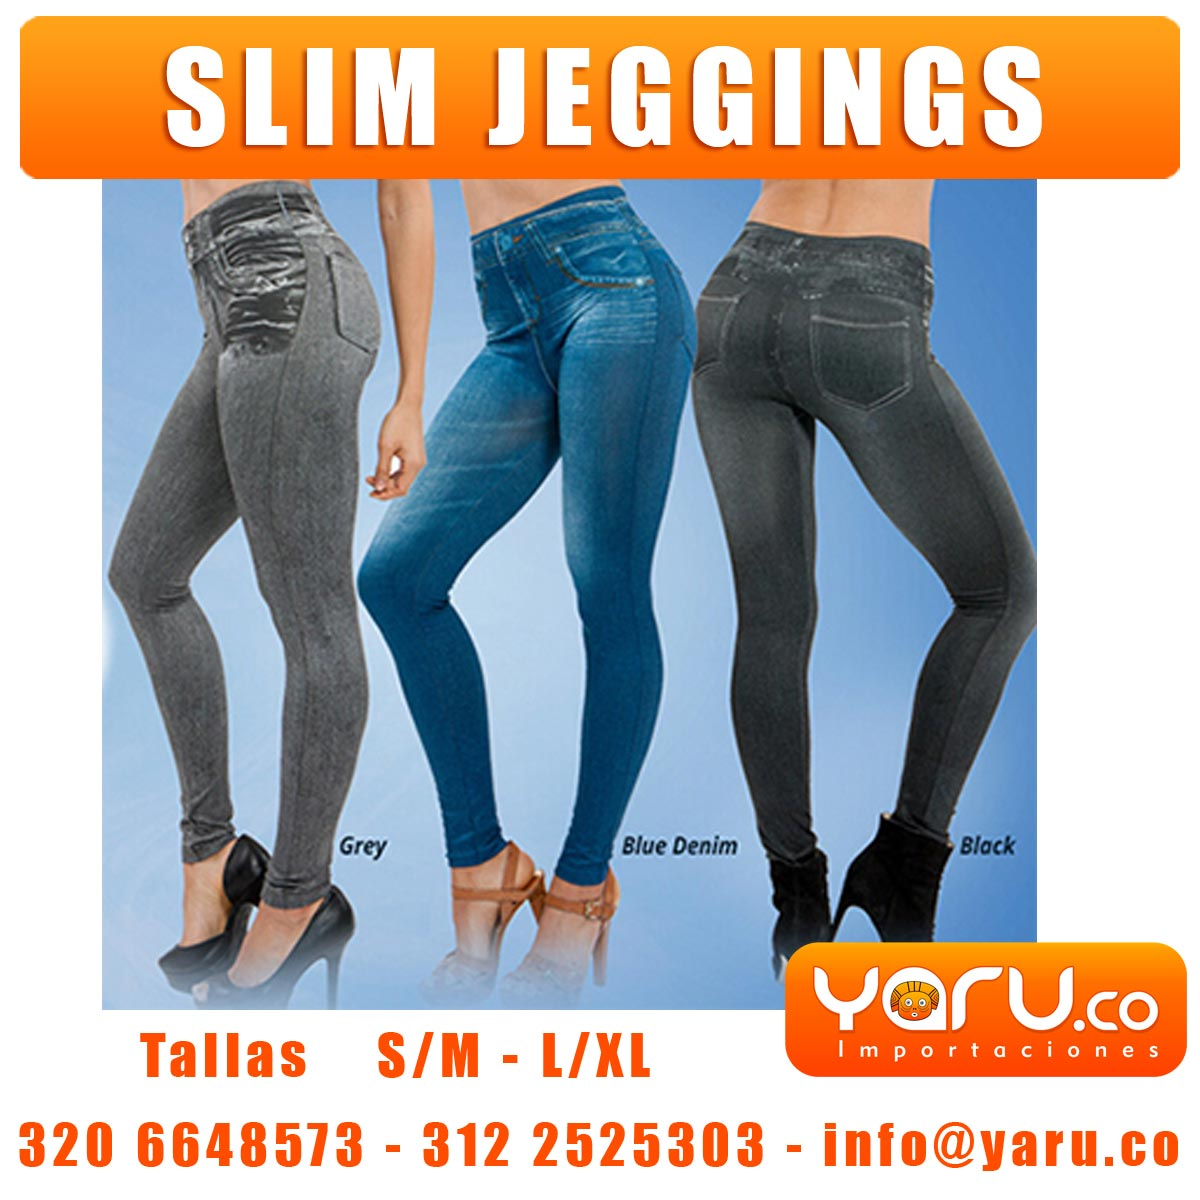 Slim jeggings tallas